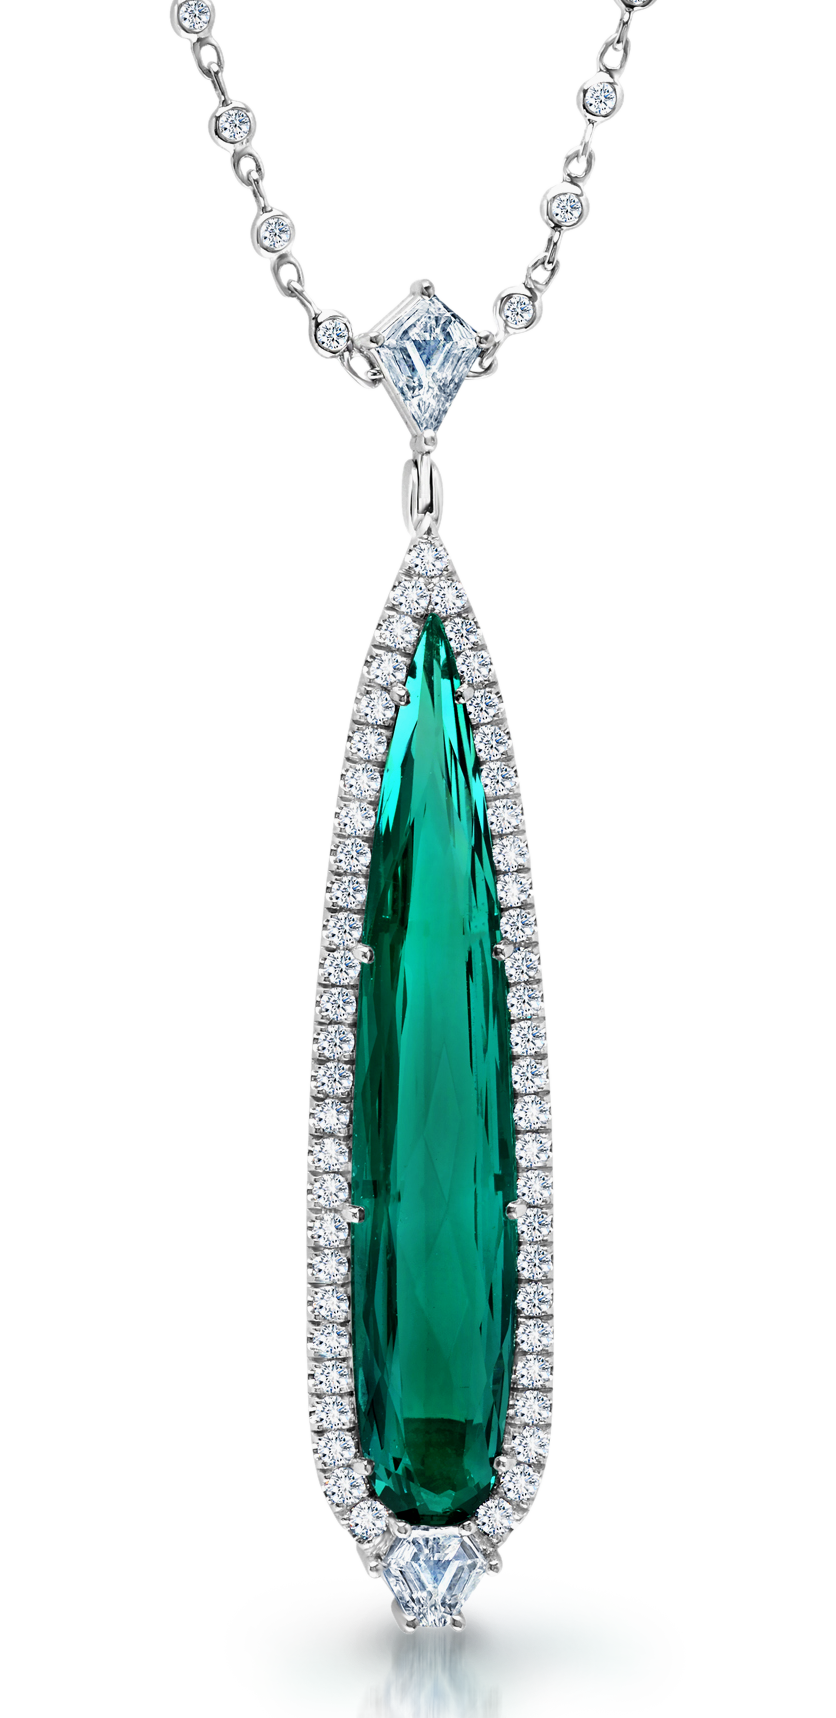 Best Colored Stone Jewelry (Over $10,000) – 2019 winner